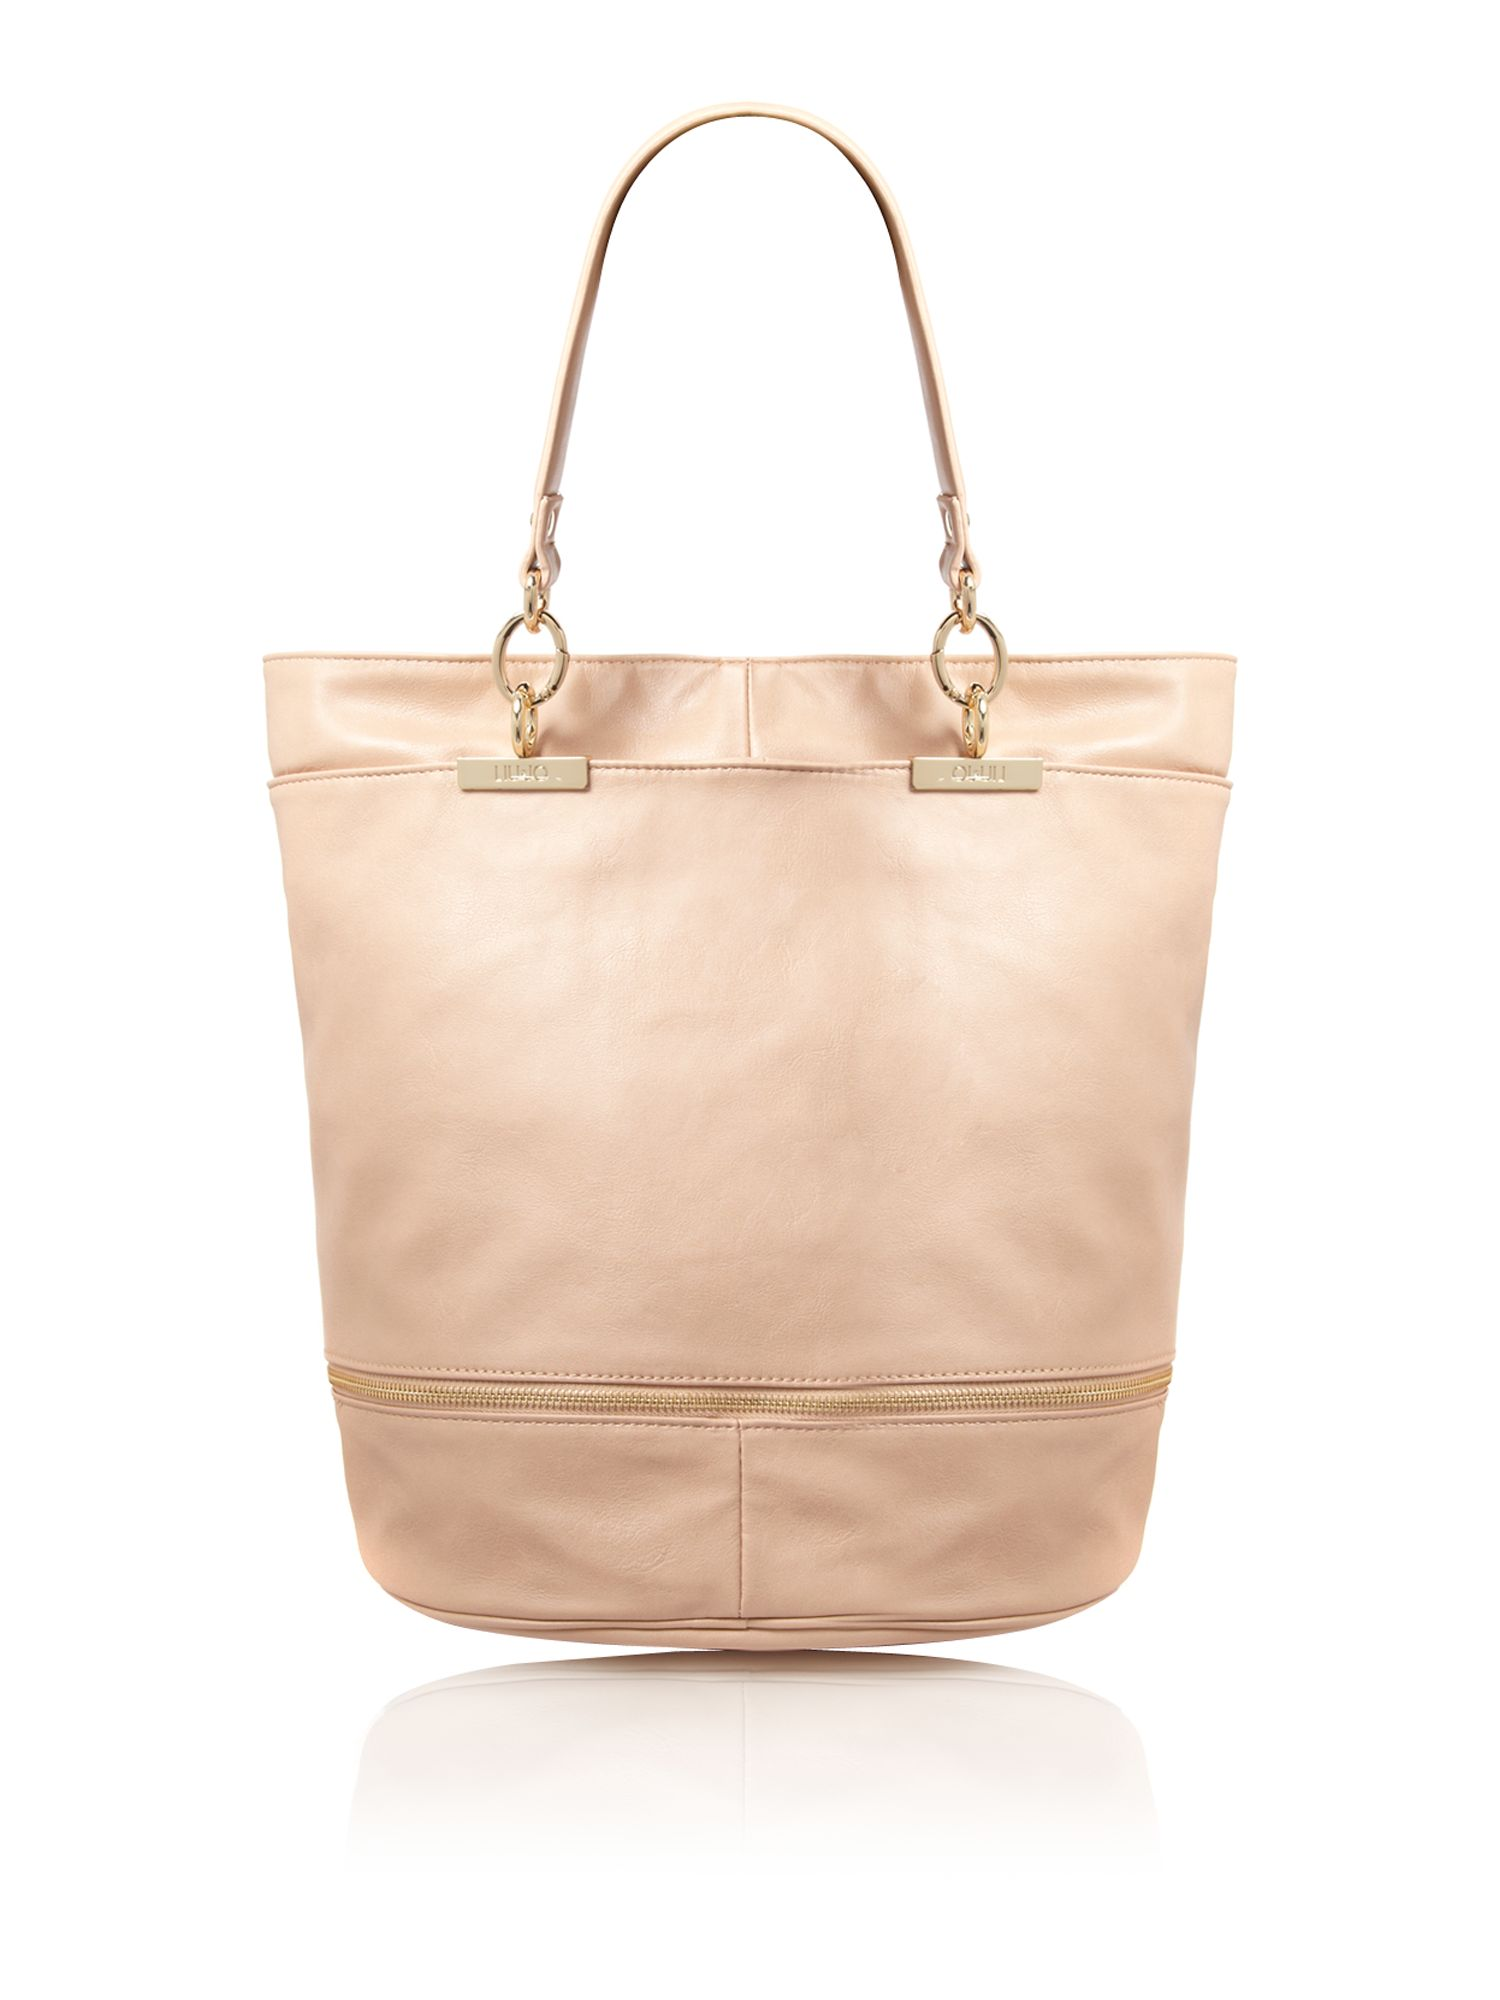 Greta large tote bag